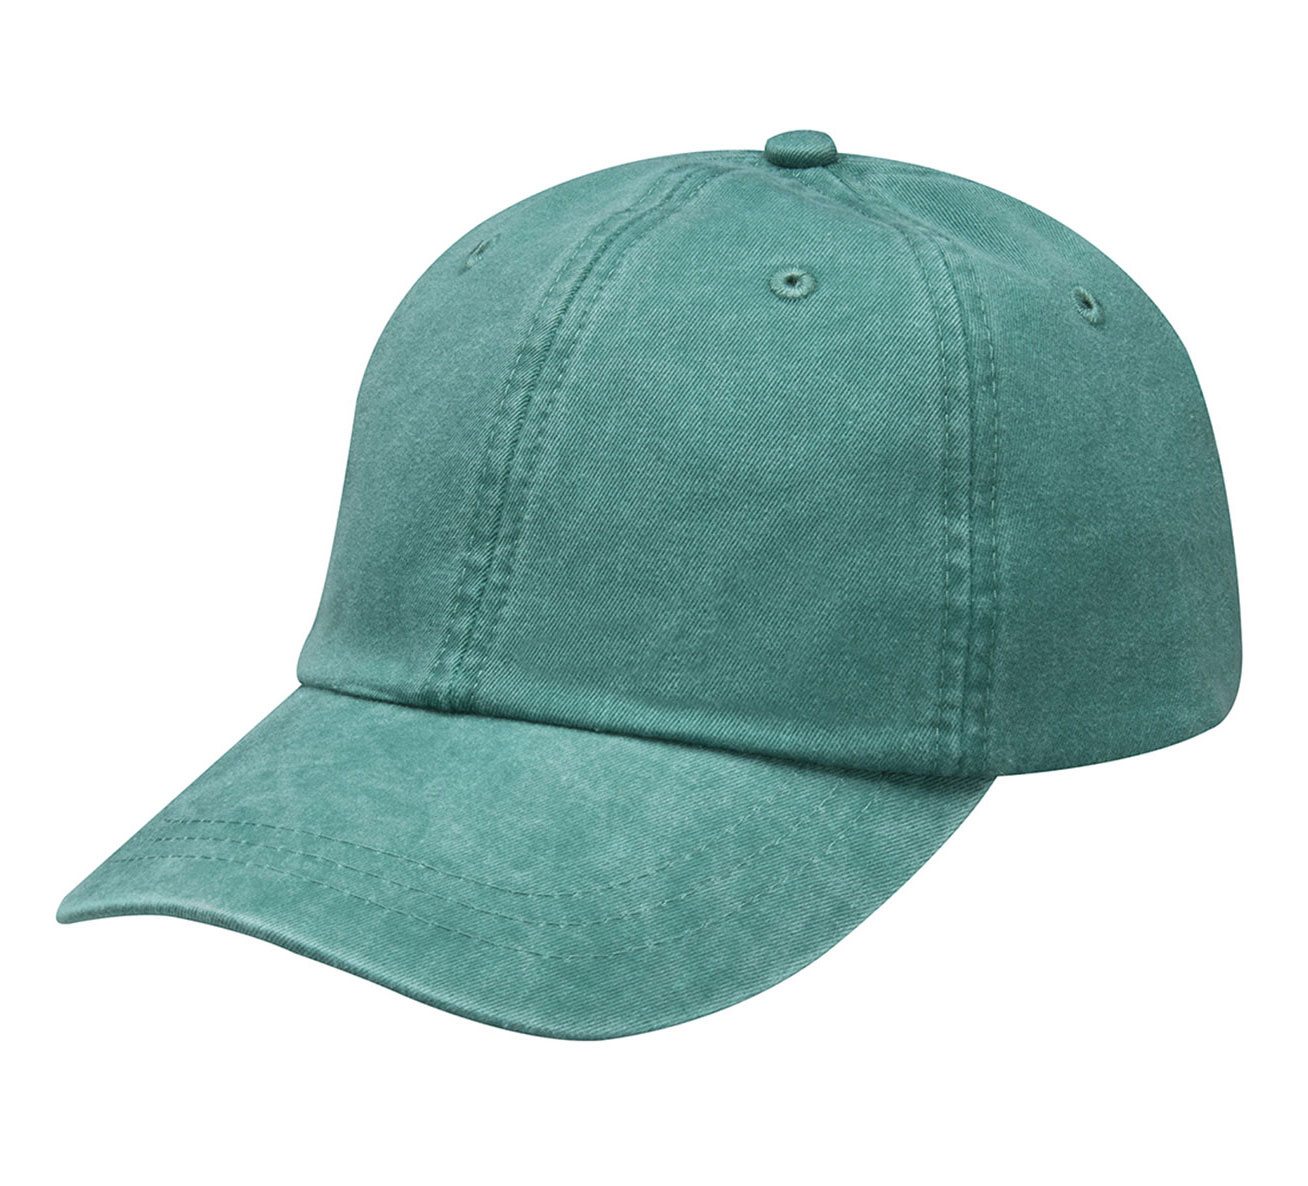 37f1771b6cbe6e Adams Washed Pigment-Dyed Cap - Design Online or Buy It Blank